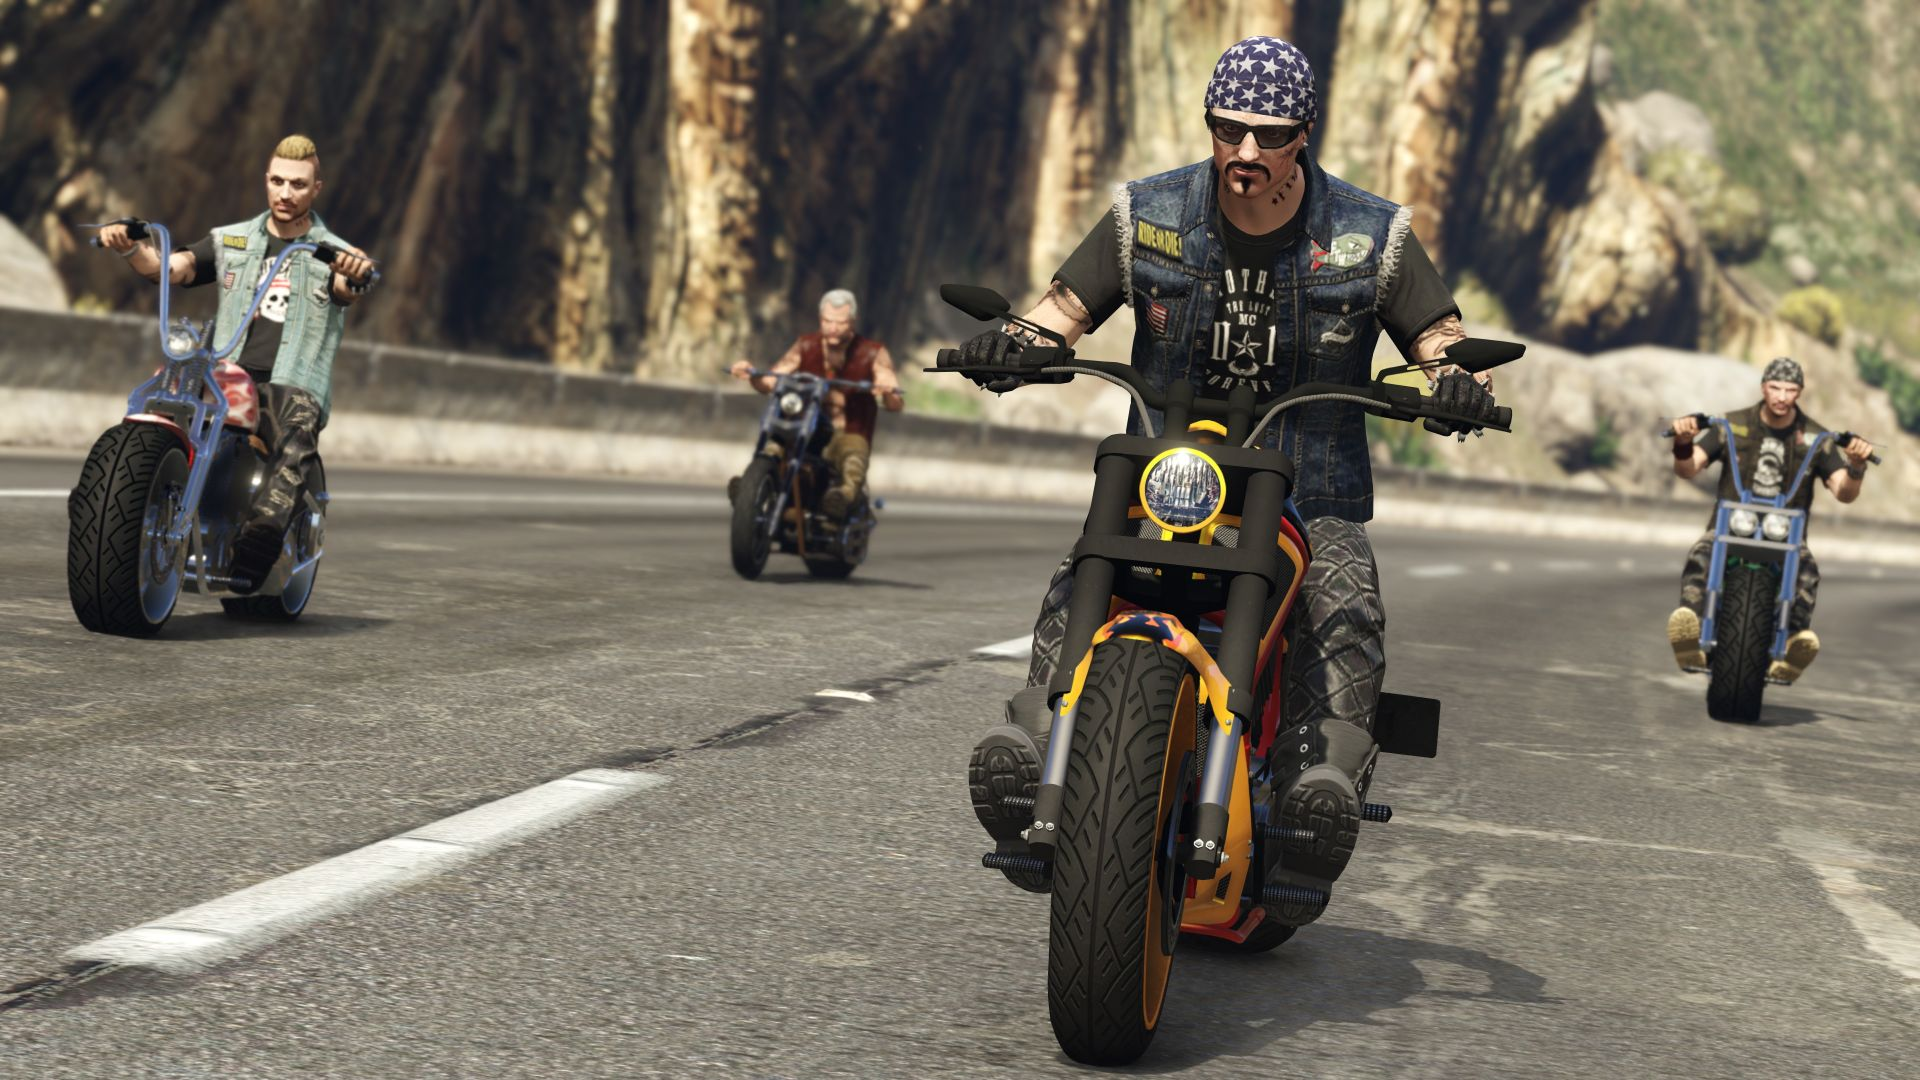 GTA Online: Bikers, gta, gta 5, best games (horizontal)